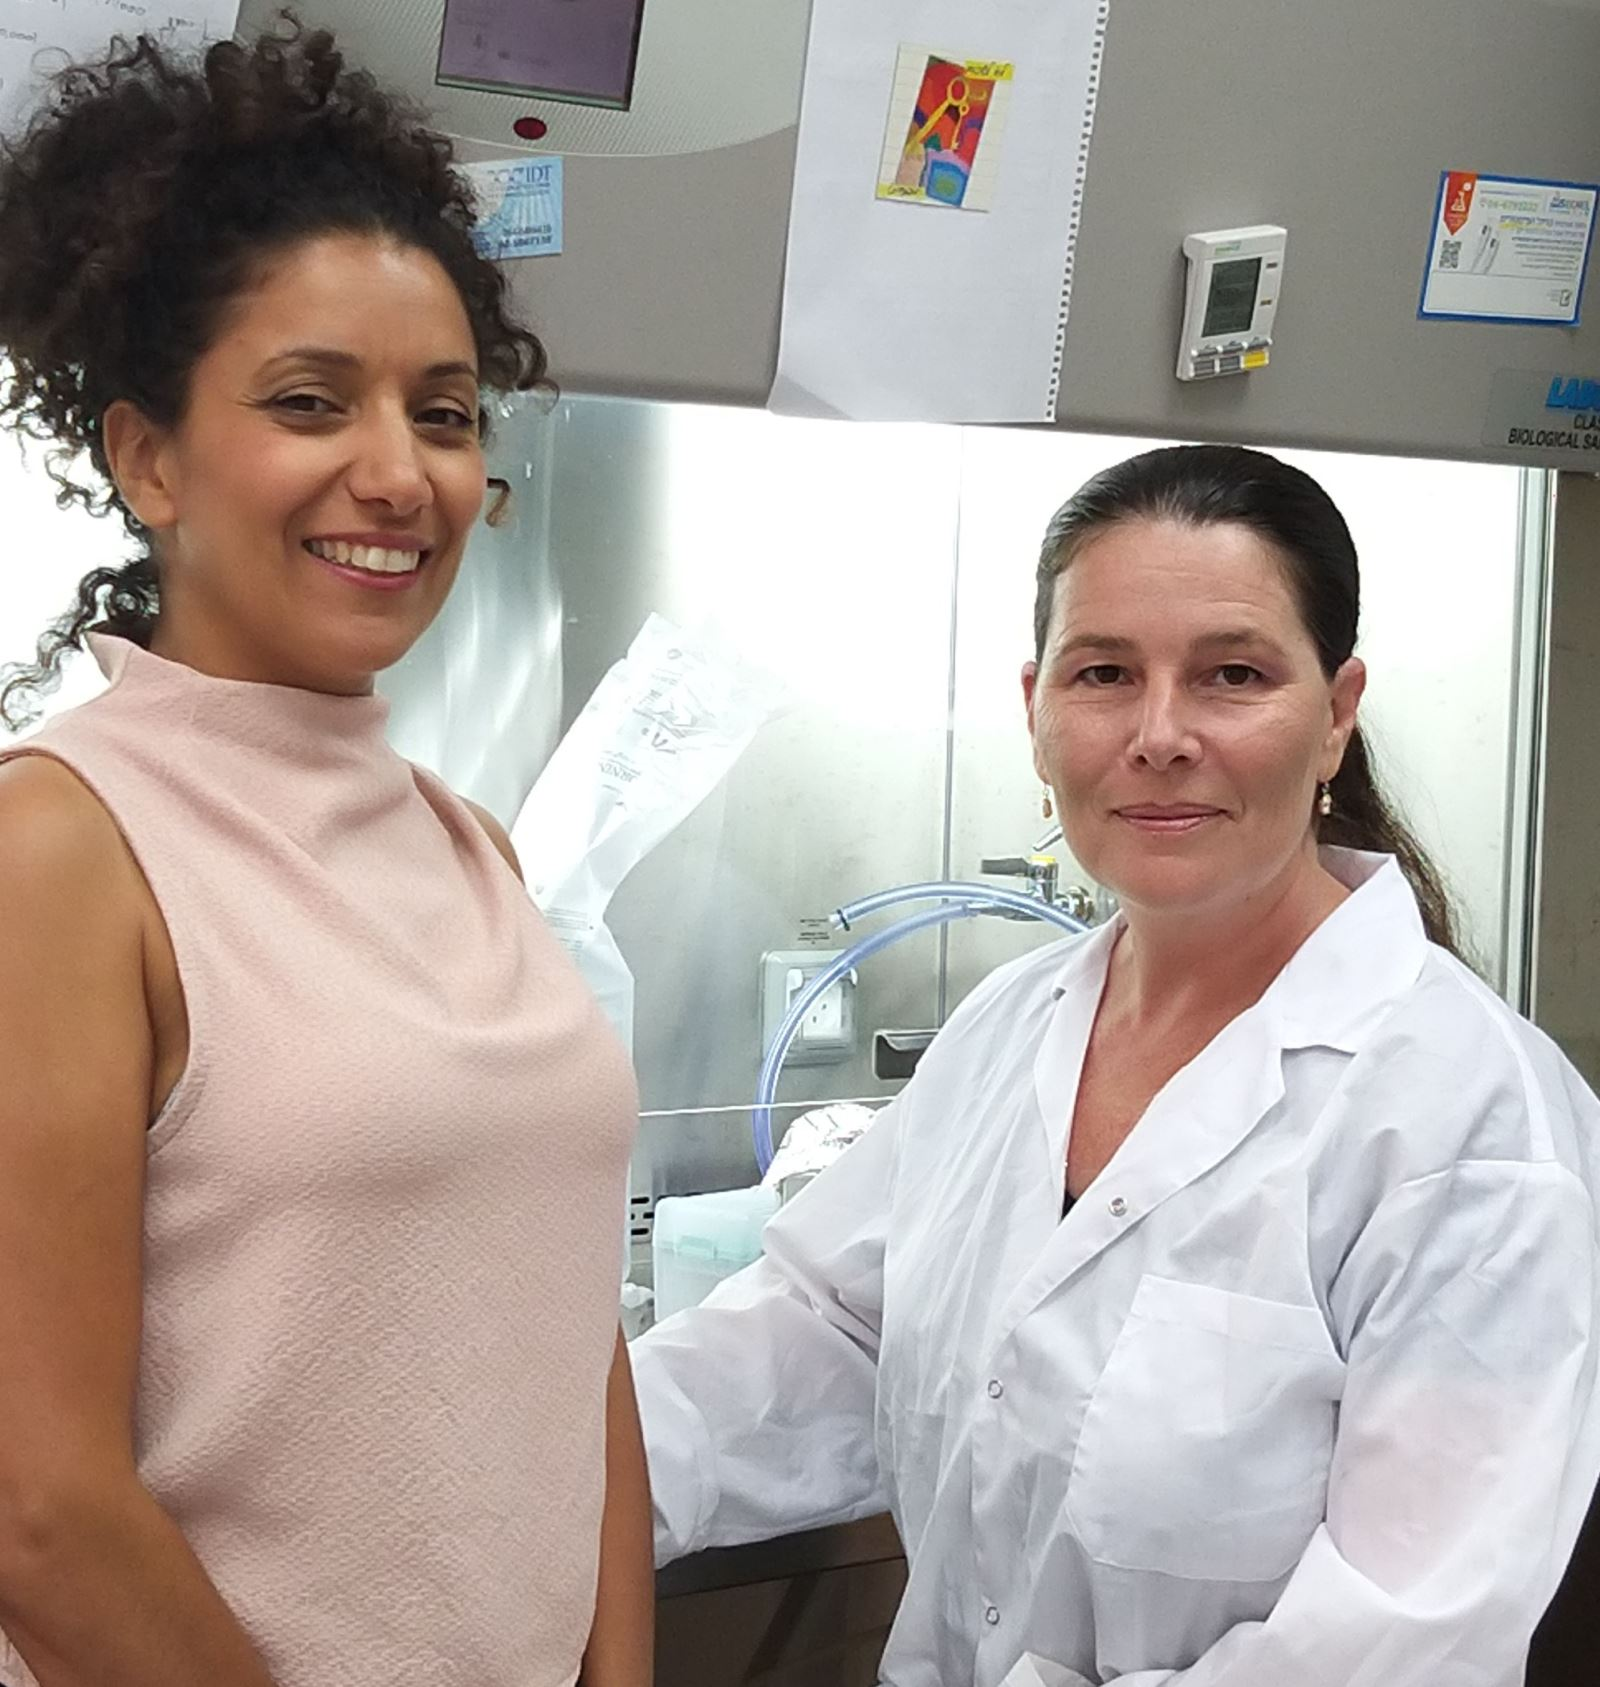 Israelis Discover Way To Prevent Melanoma Turning Lethal Israel21c